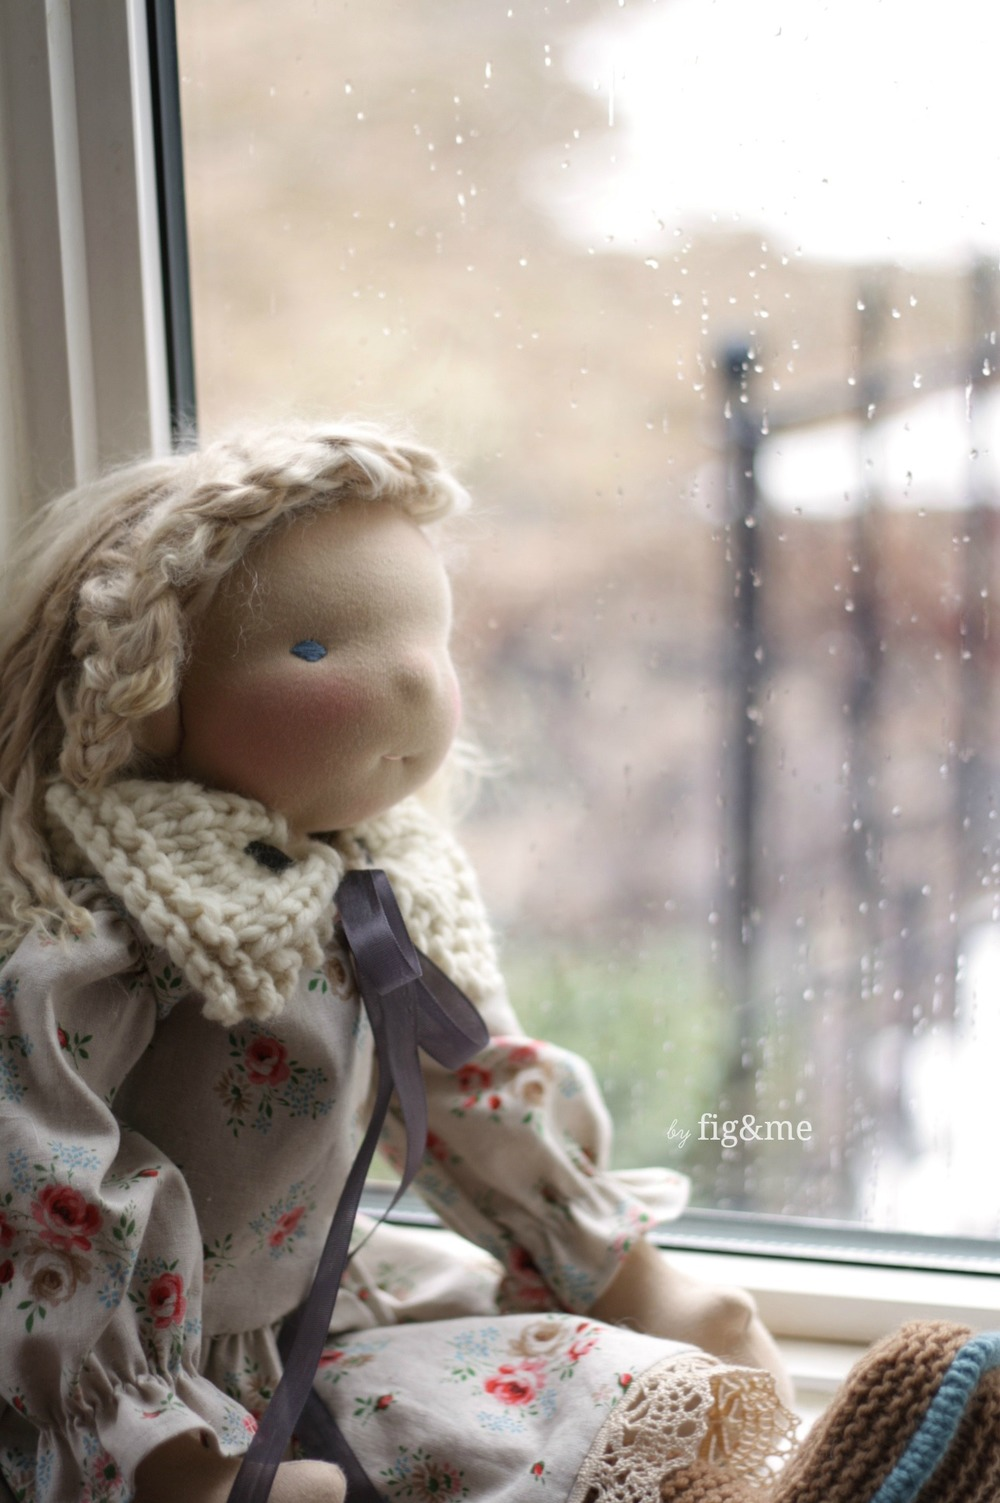 A doll and the rain, by Fig&me